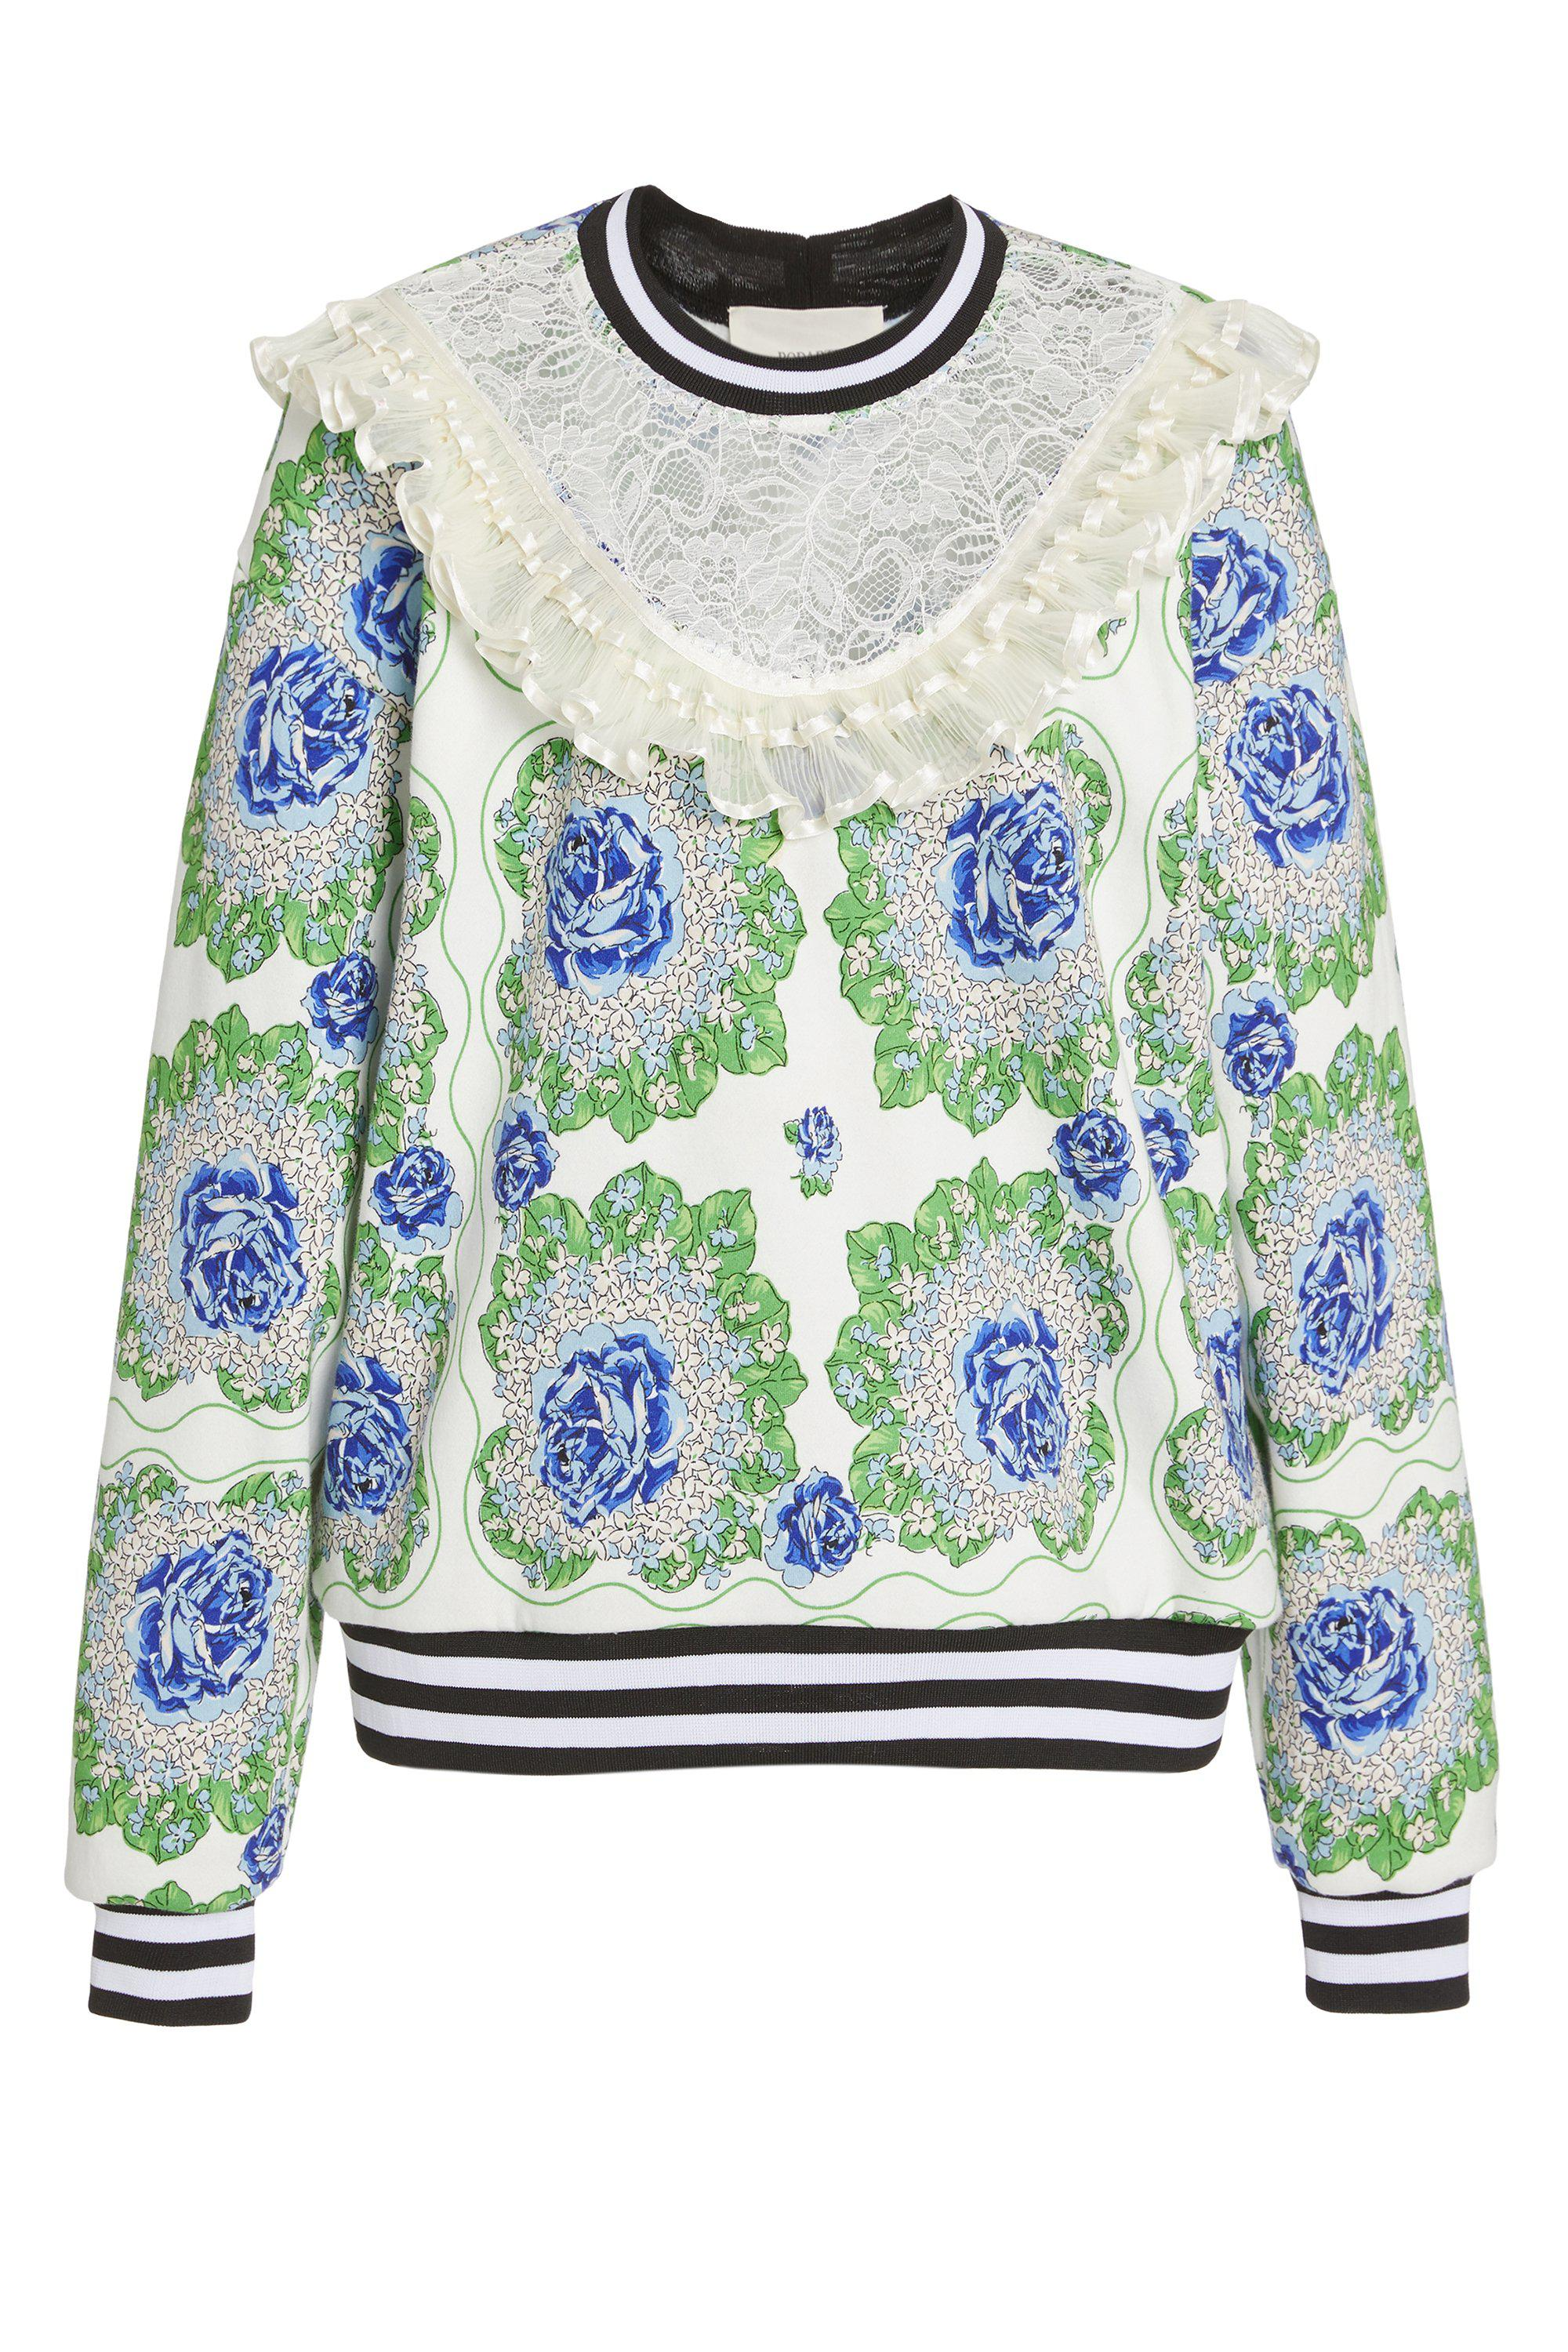 BLUE AND GREEN FLORAL PRINTED SWEATSHIRT 3